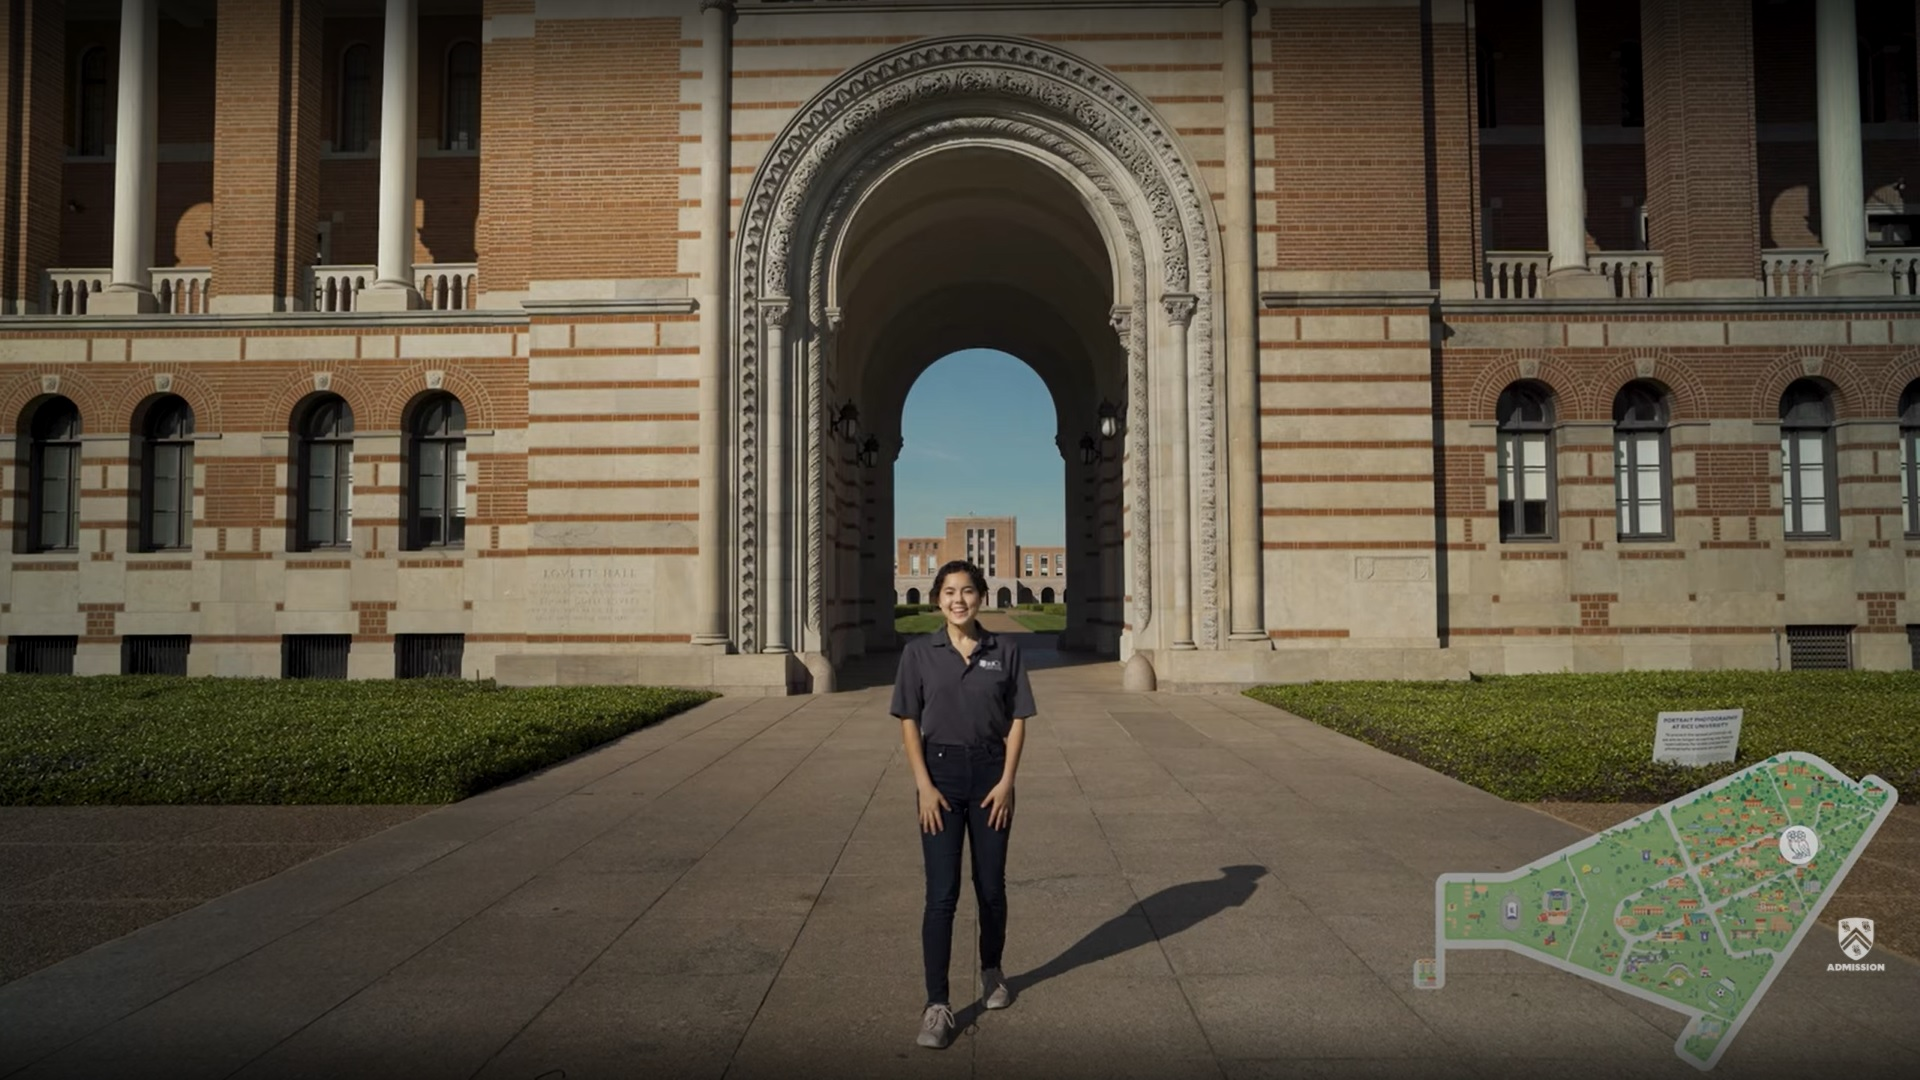 Student tour guide Lauren Ross stands in front of the iconic archway, the Sallyport, located in the center of Lovett Hall.